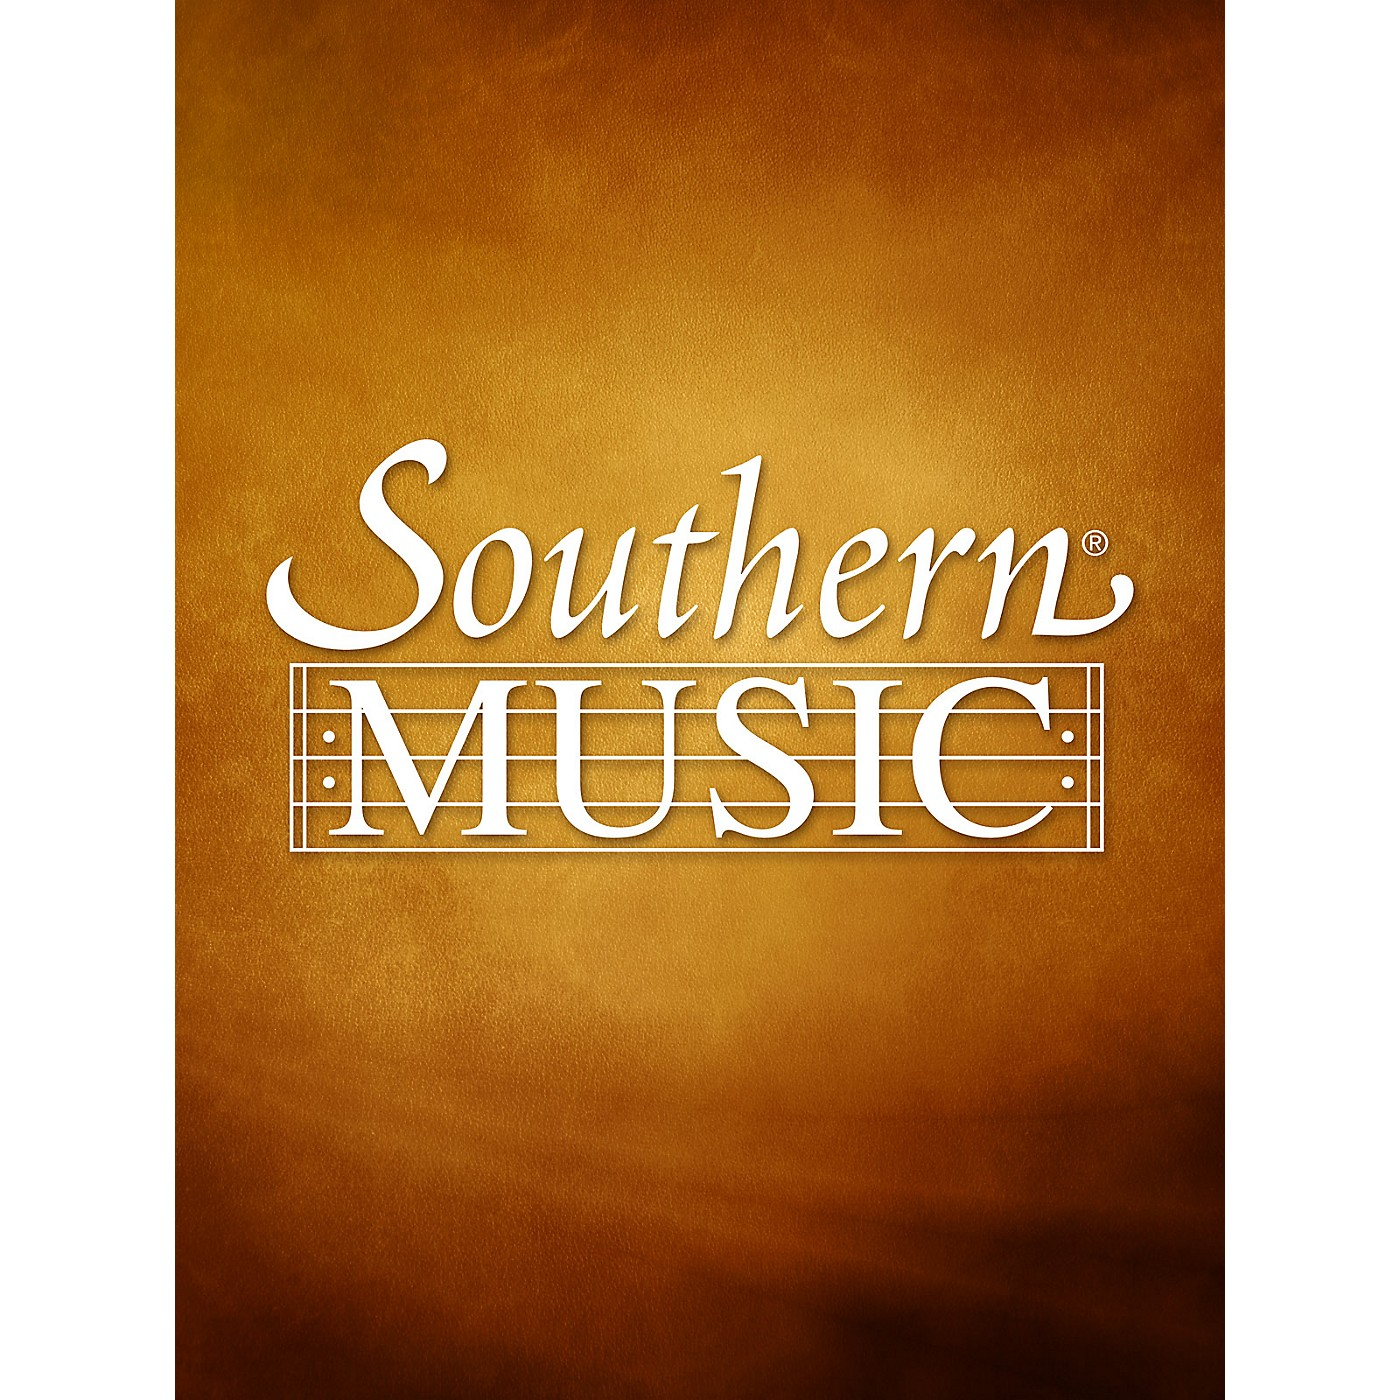 Hal Leonard New Timp (Percussion Music/Timpani - Other Musi) Southern Music Series Composed by Foote, Arthur thumbnail